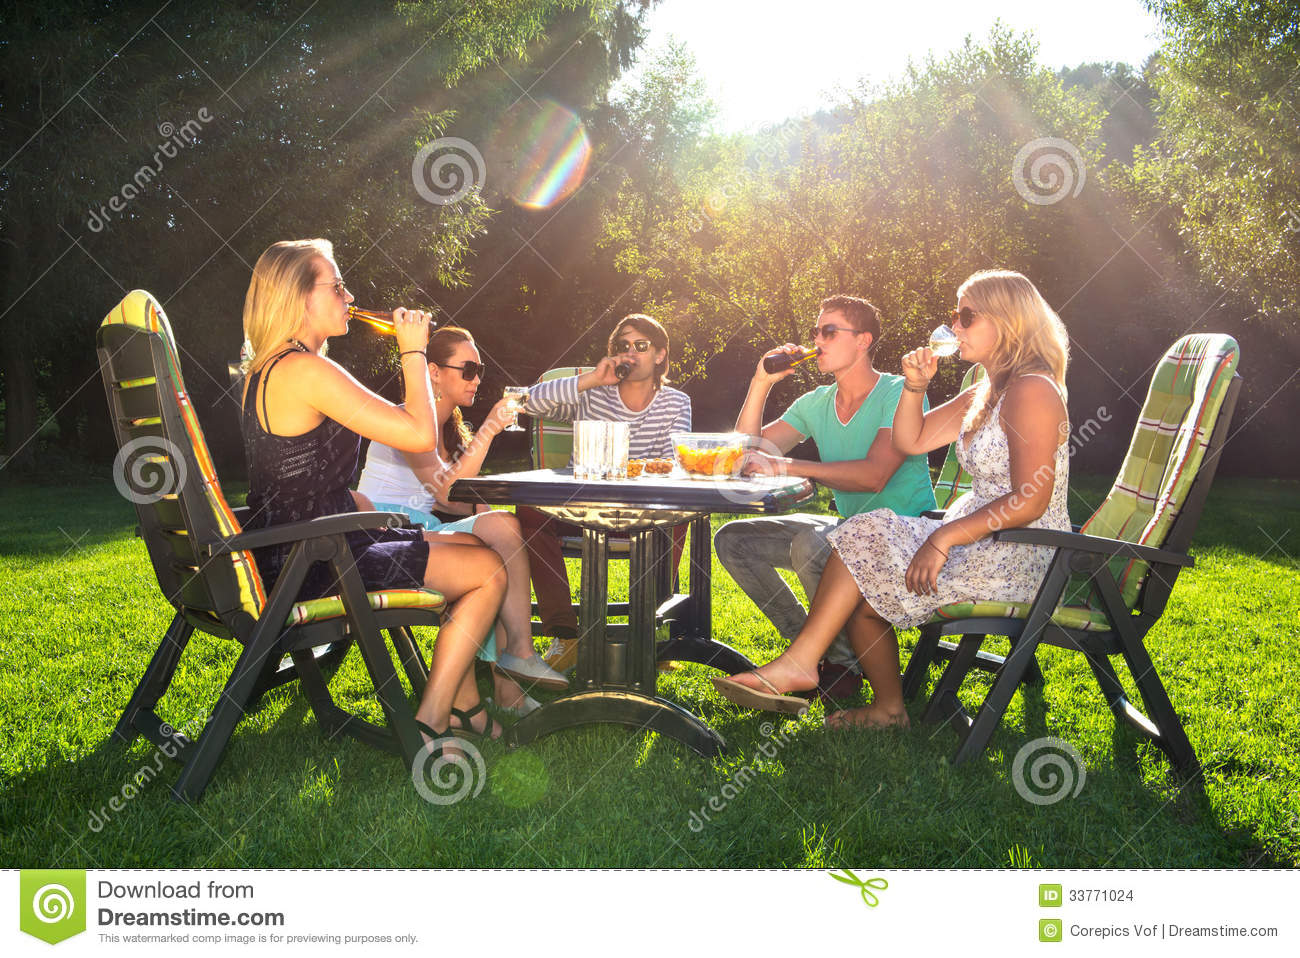 Group of young friends enjoying a garden party on a sunny afternoon.